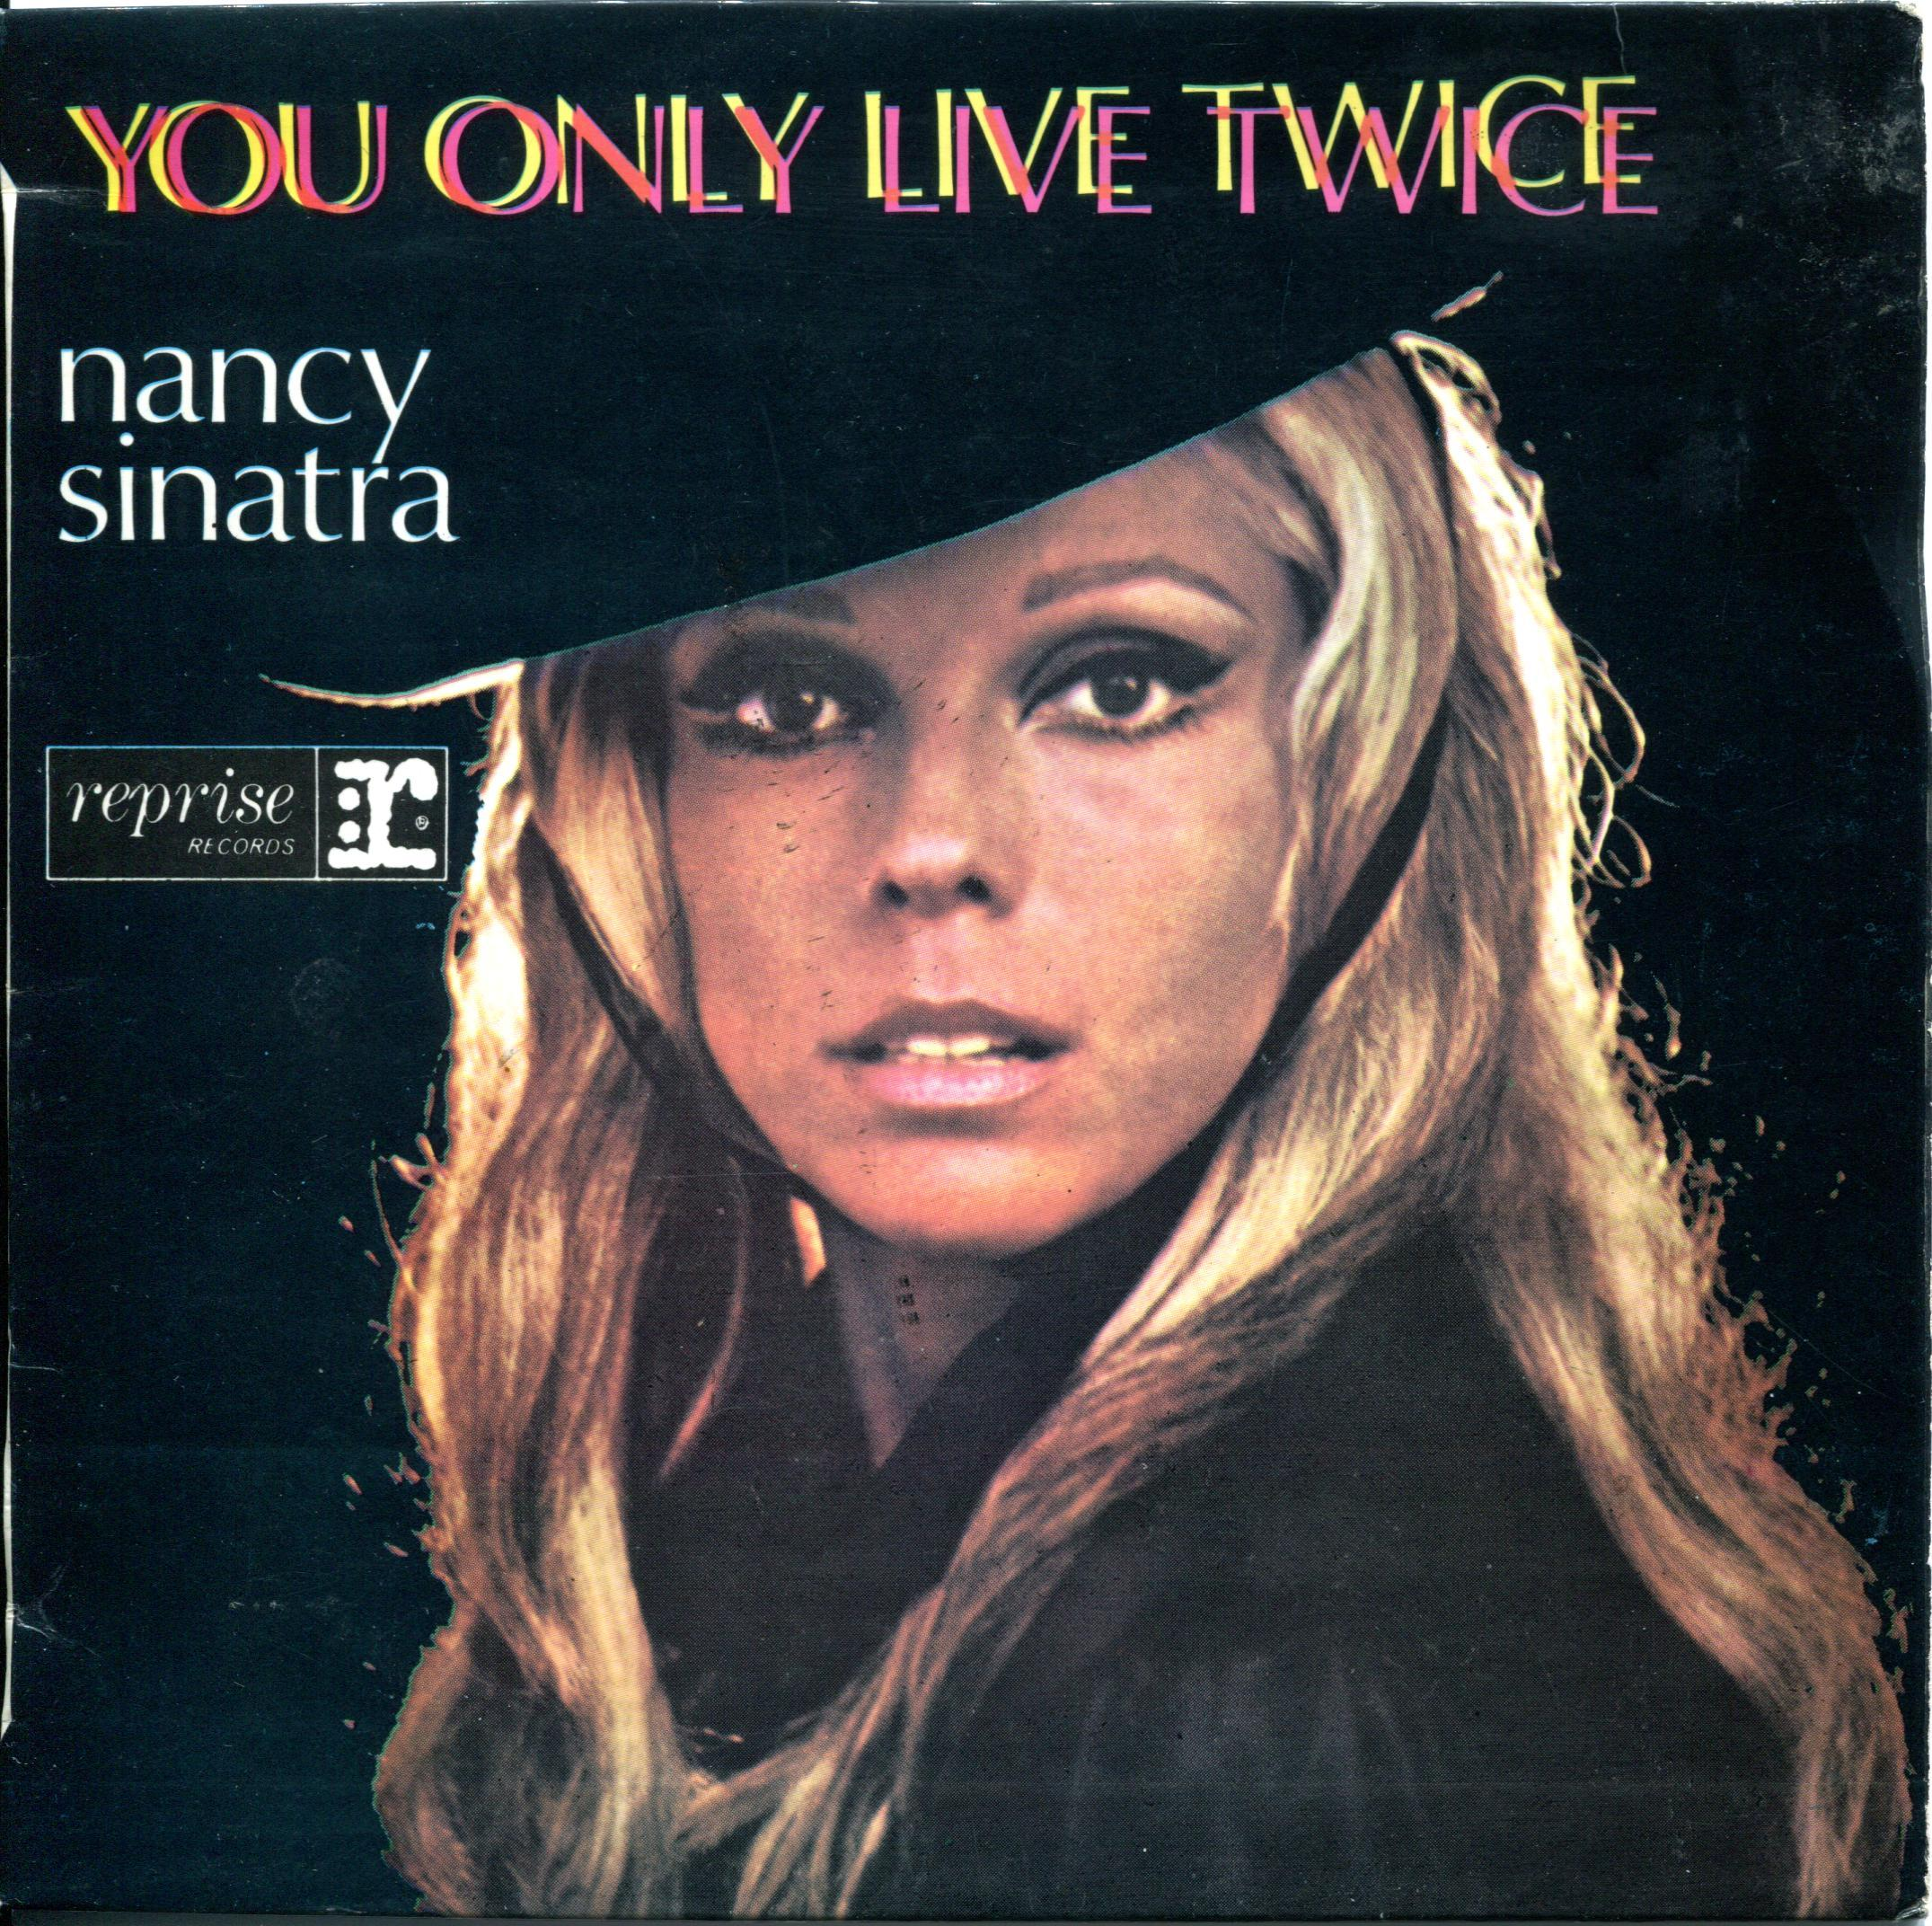 You Only Live Twice Nancy Sinatra black hat